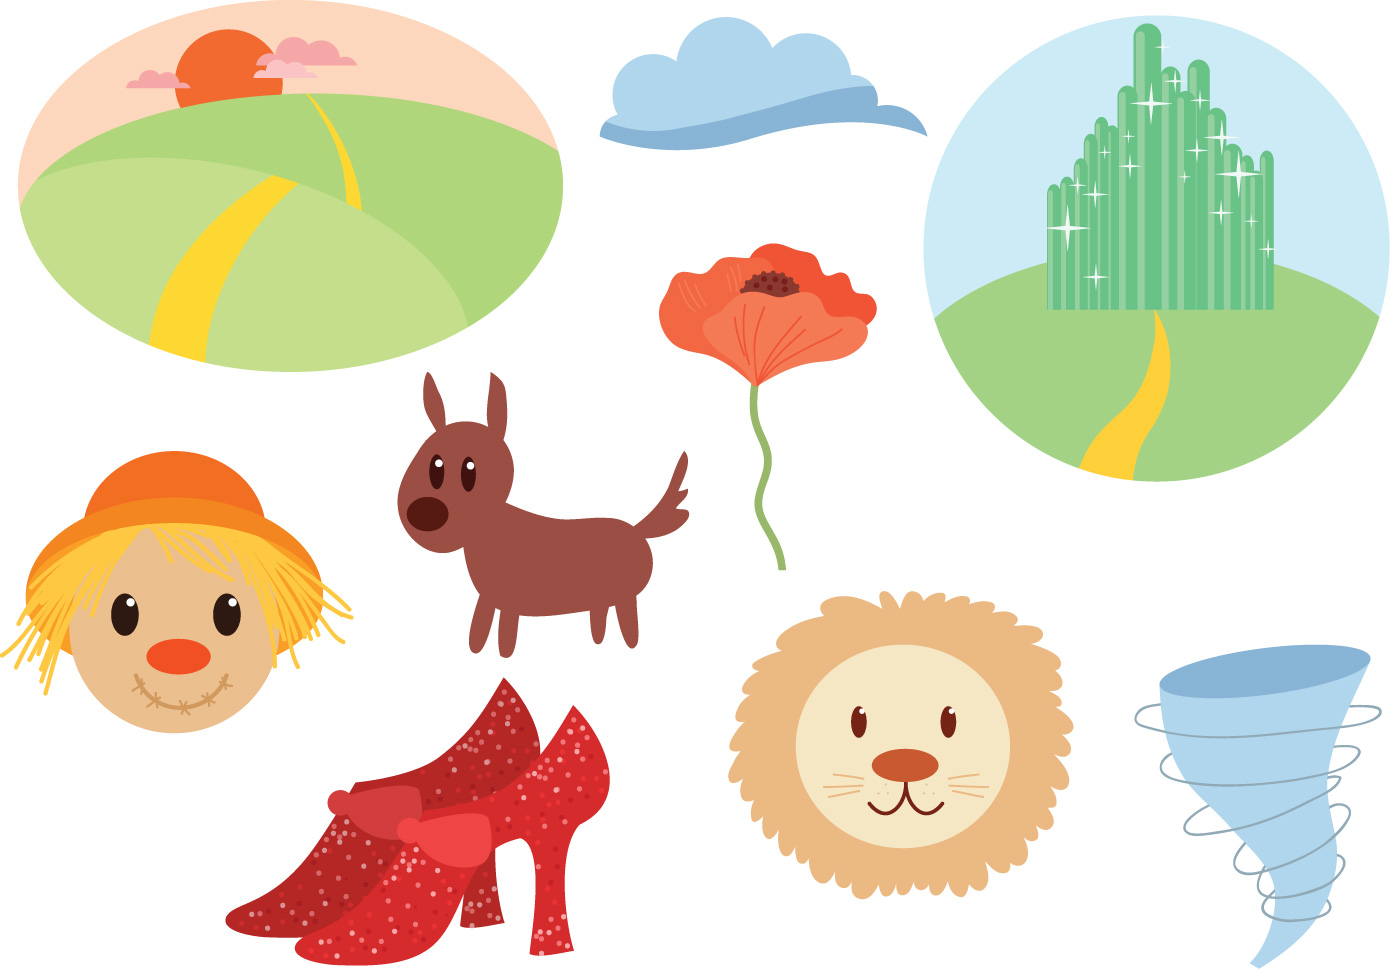 Wizard Of Oz Free Vector Art.